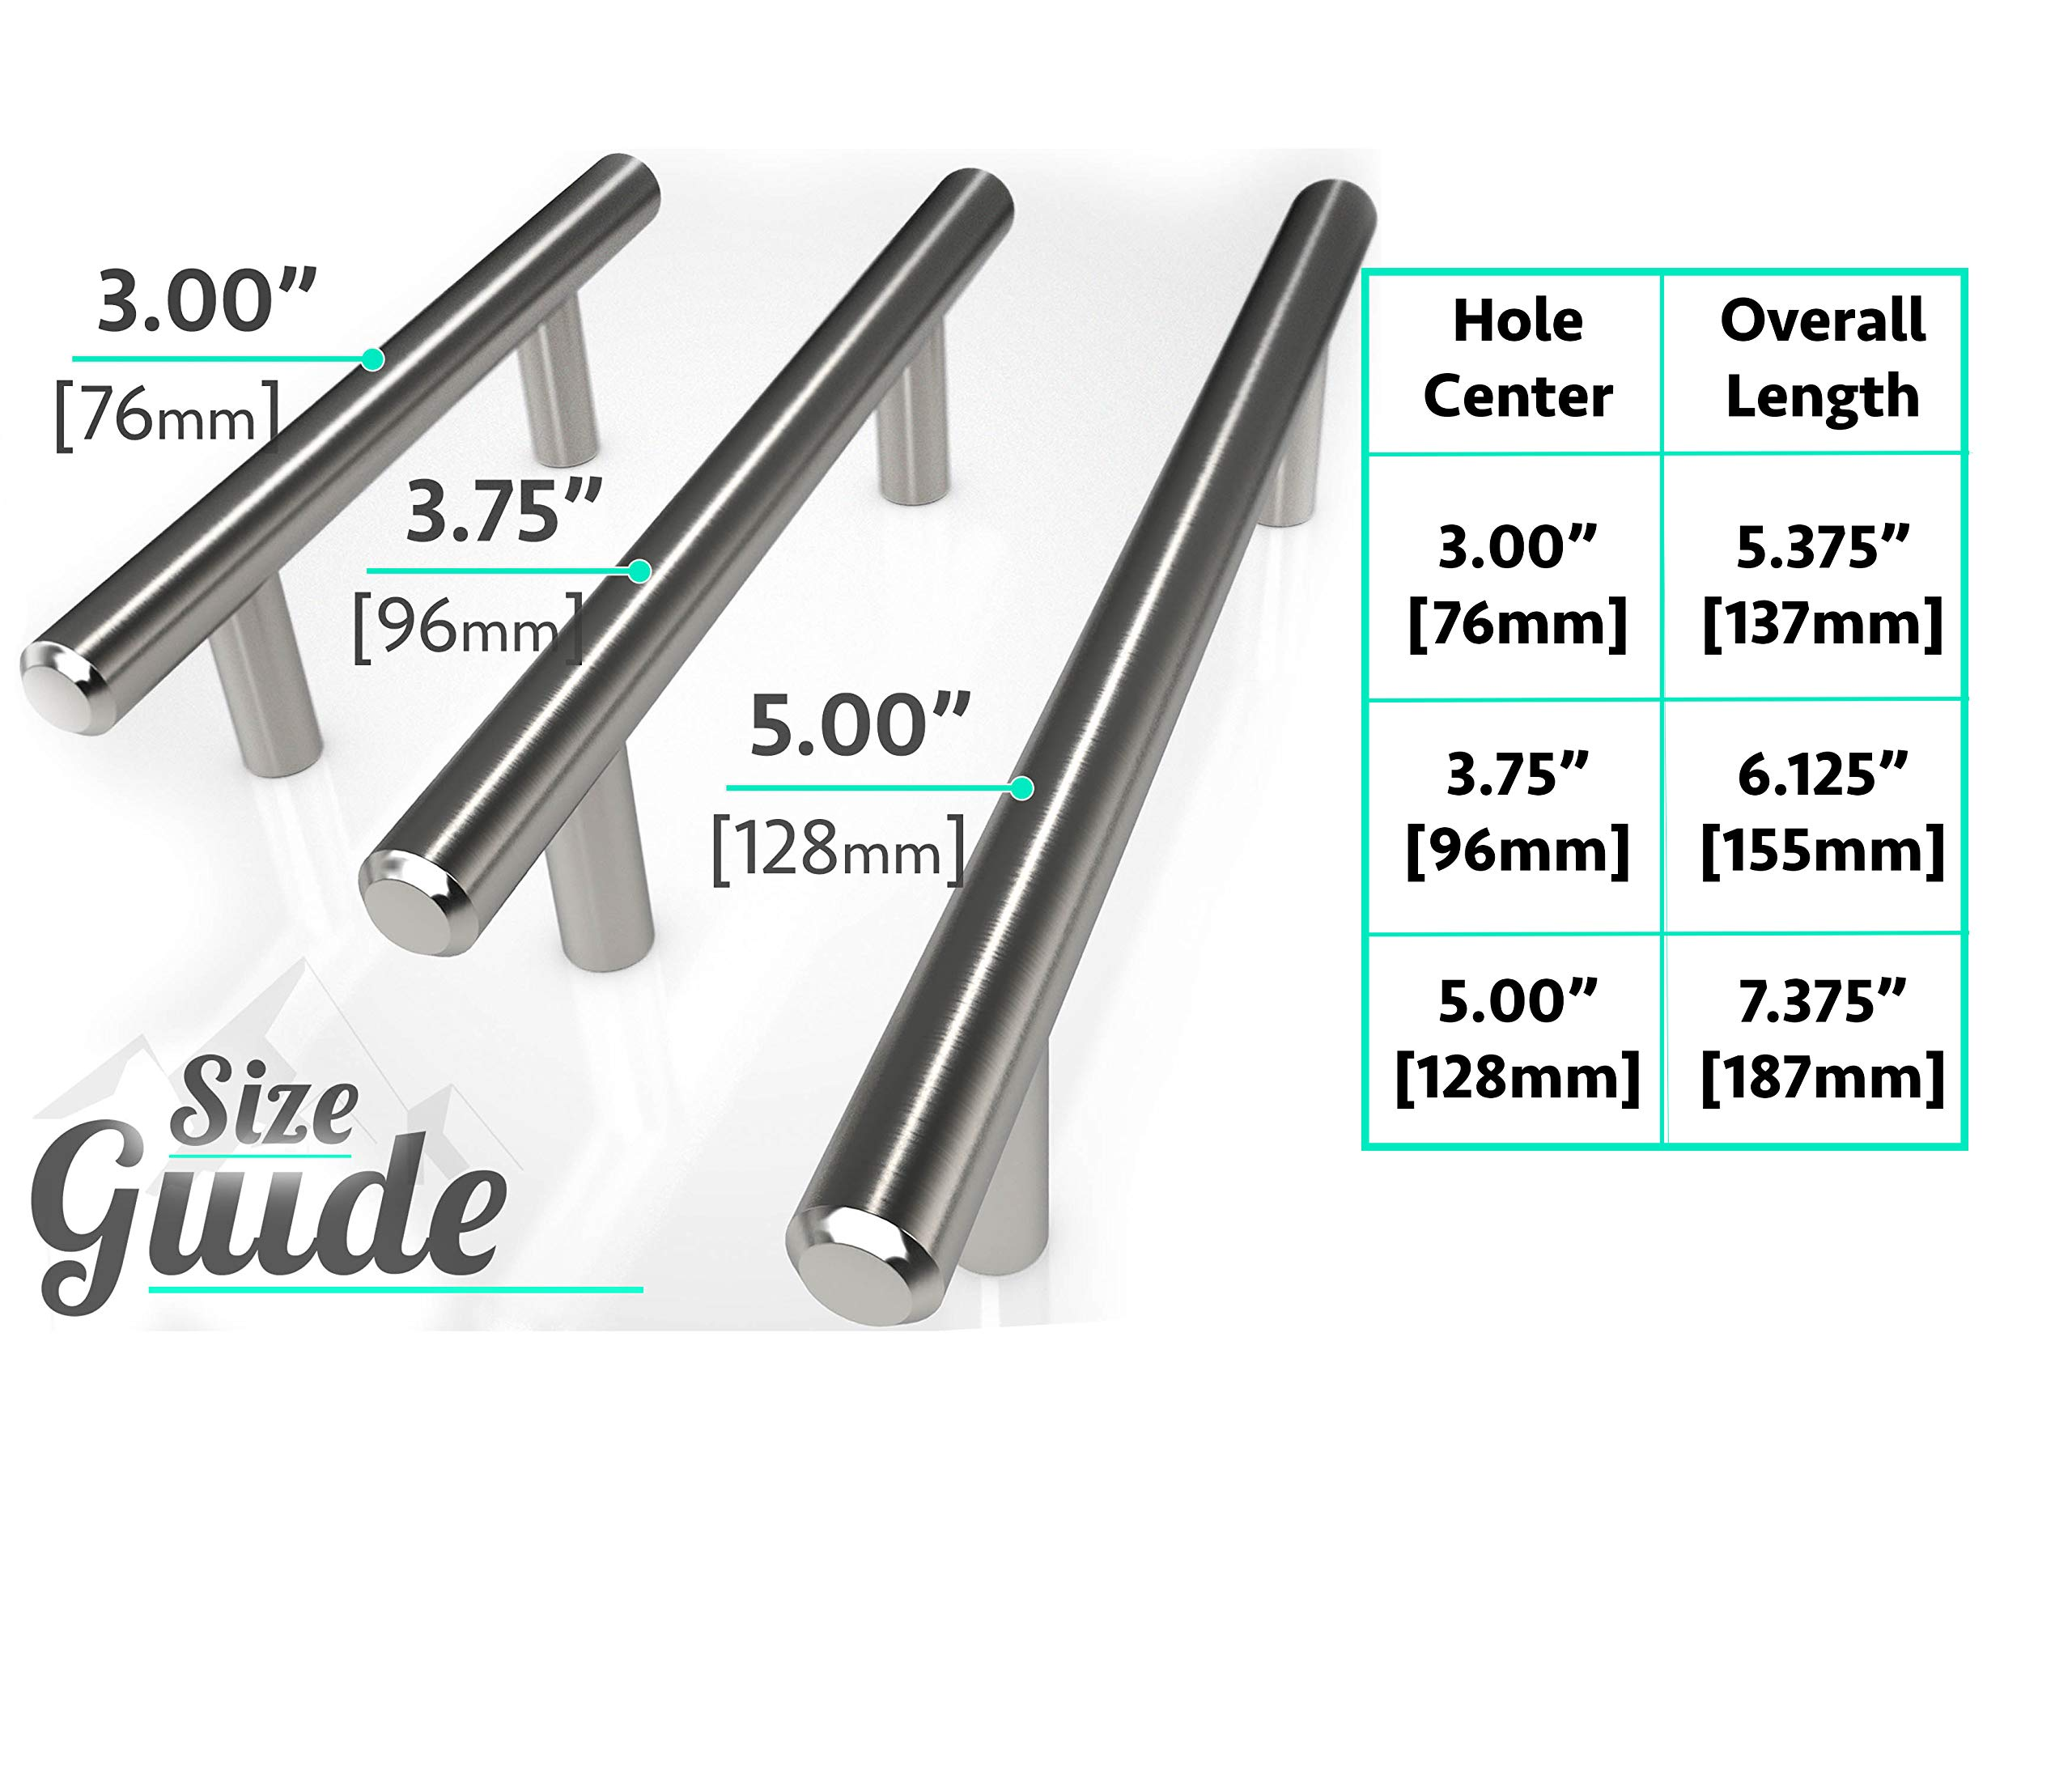 Alpine Hardware | 30Pack ~ 3'' (76mm) Hole Center | Solid Stainless Steel, Bar Handle Pull with A Fine-Brushed Satin Nickel Finish | Kitchen Cabinet Hardware/Dresser Drawer Handles by ALPINE HARDWARE